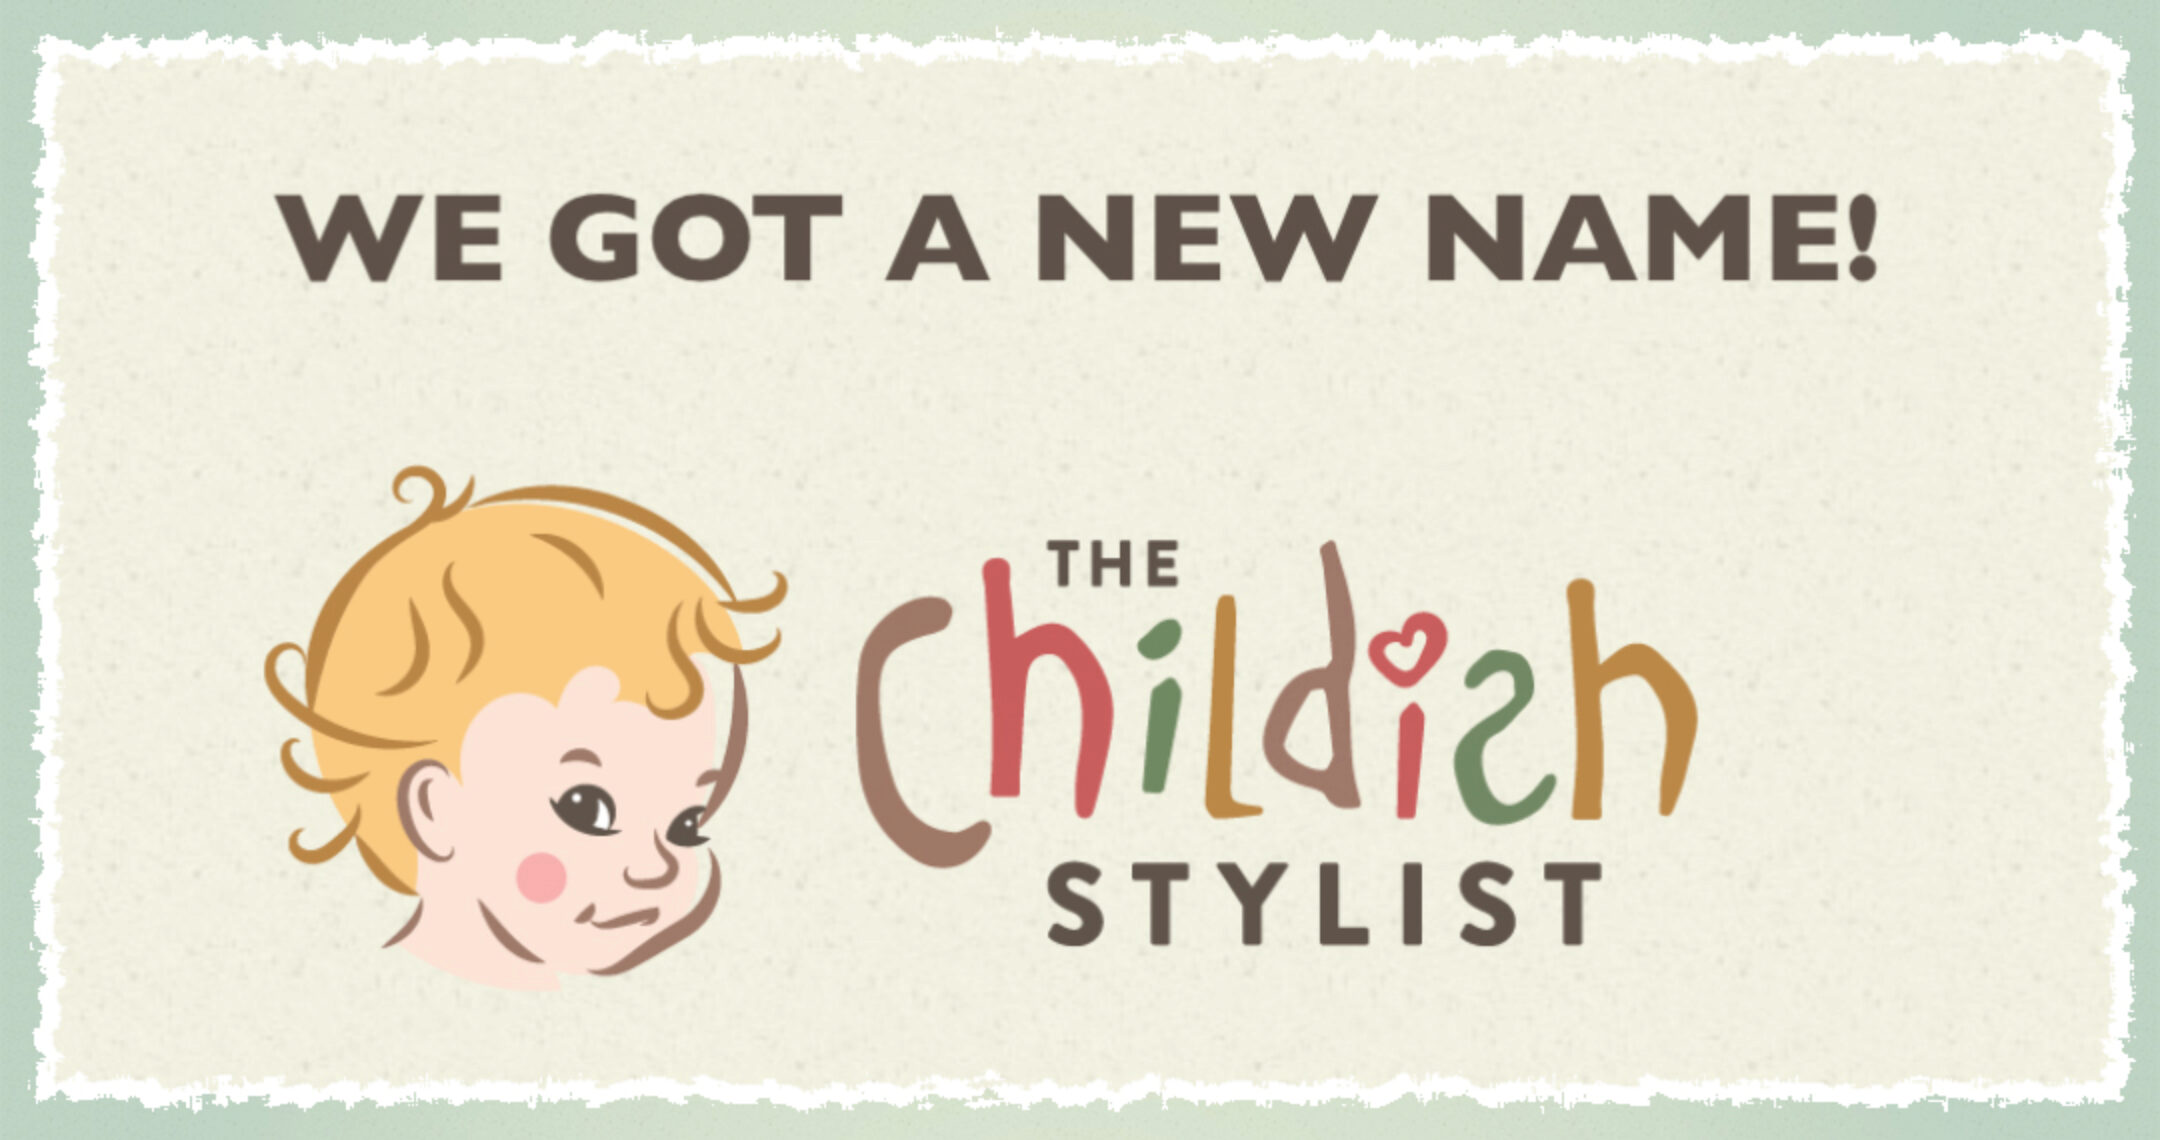 We are now The Childish Stylist